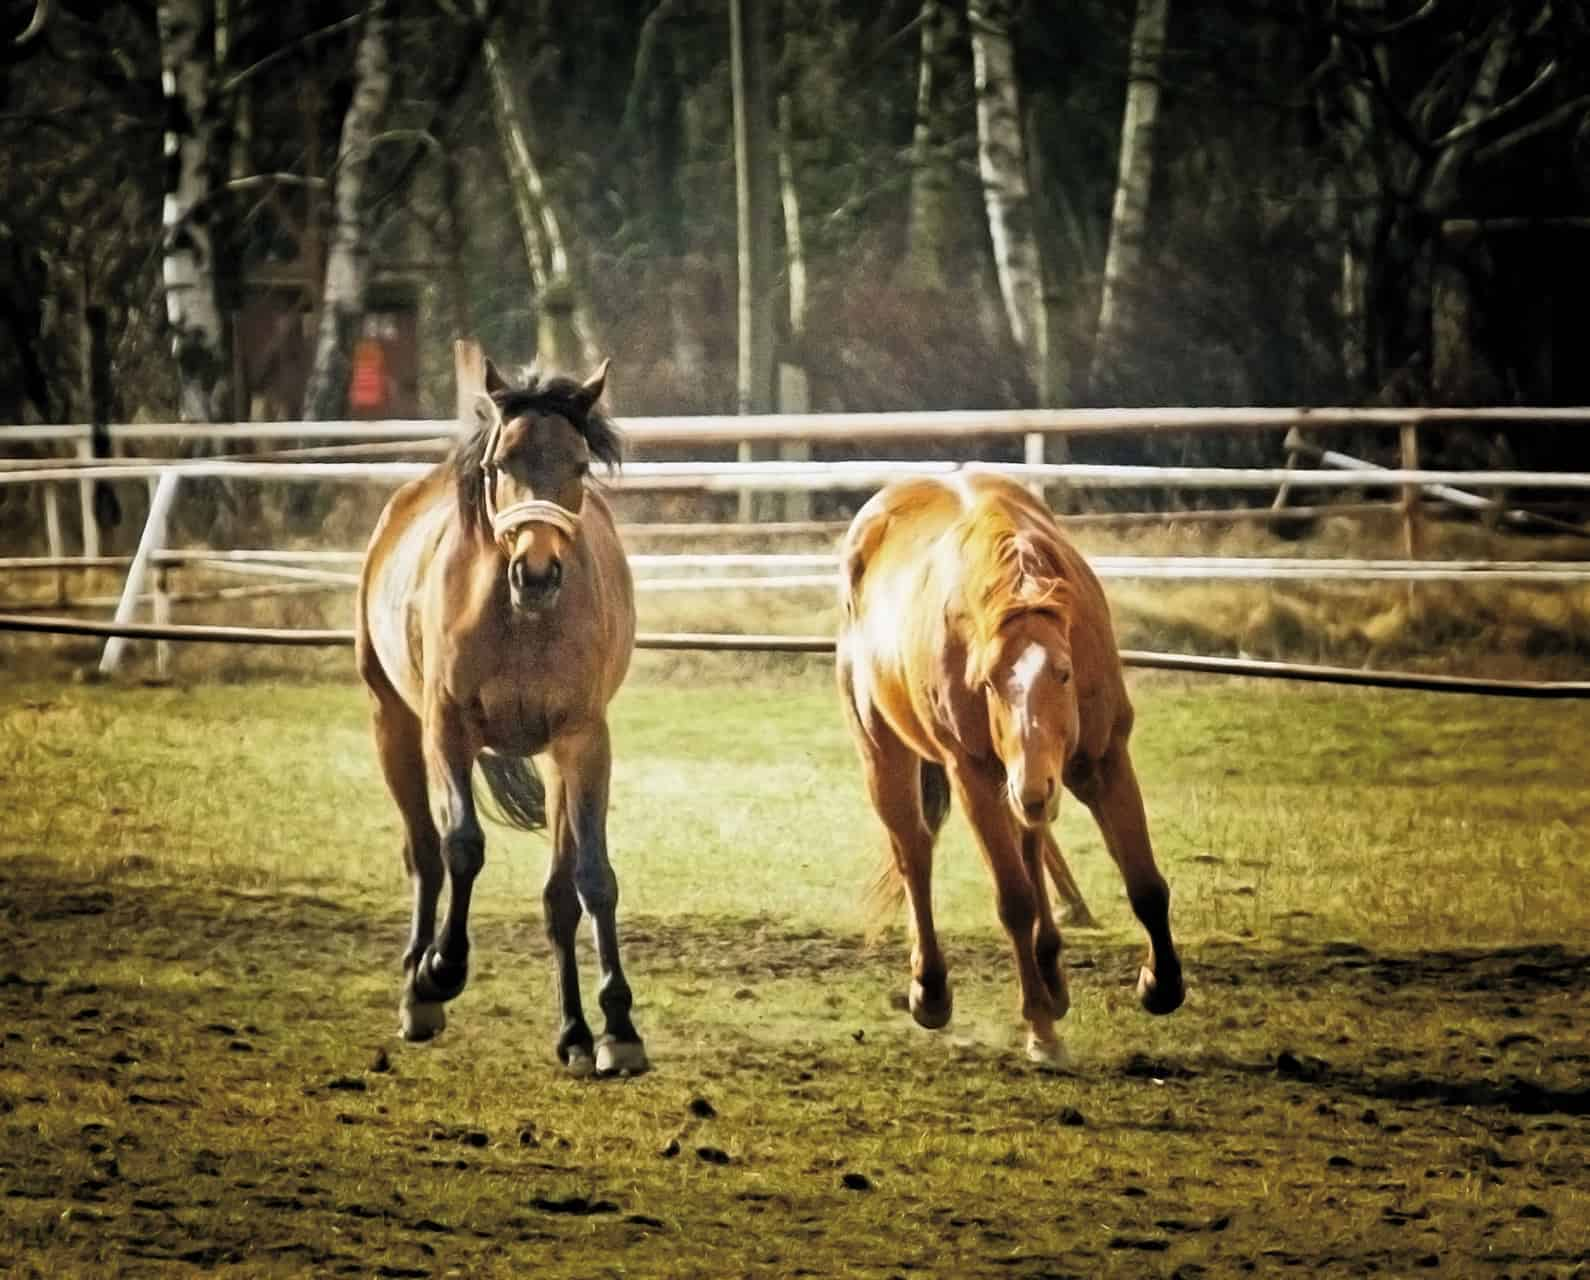 Differences Between Mares and Geldings